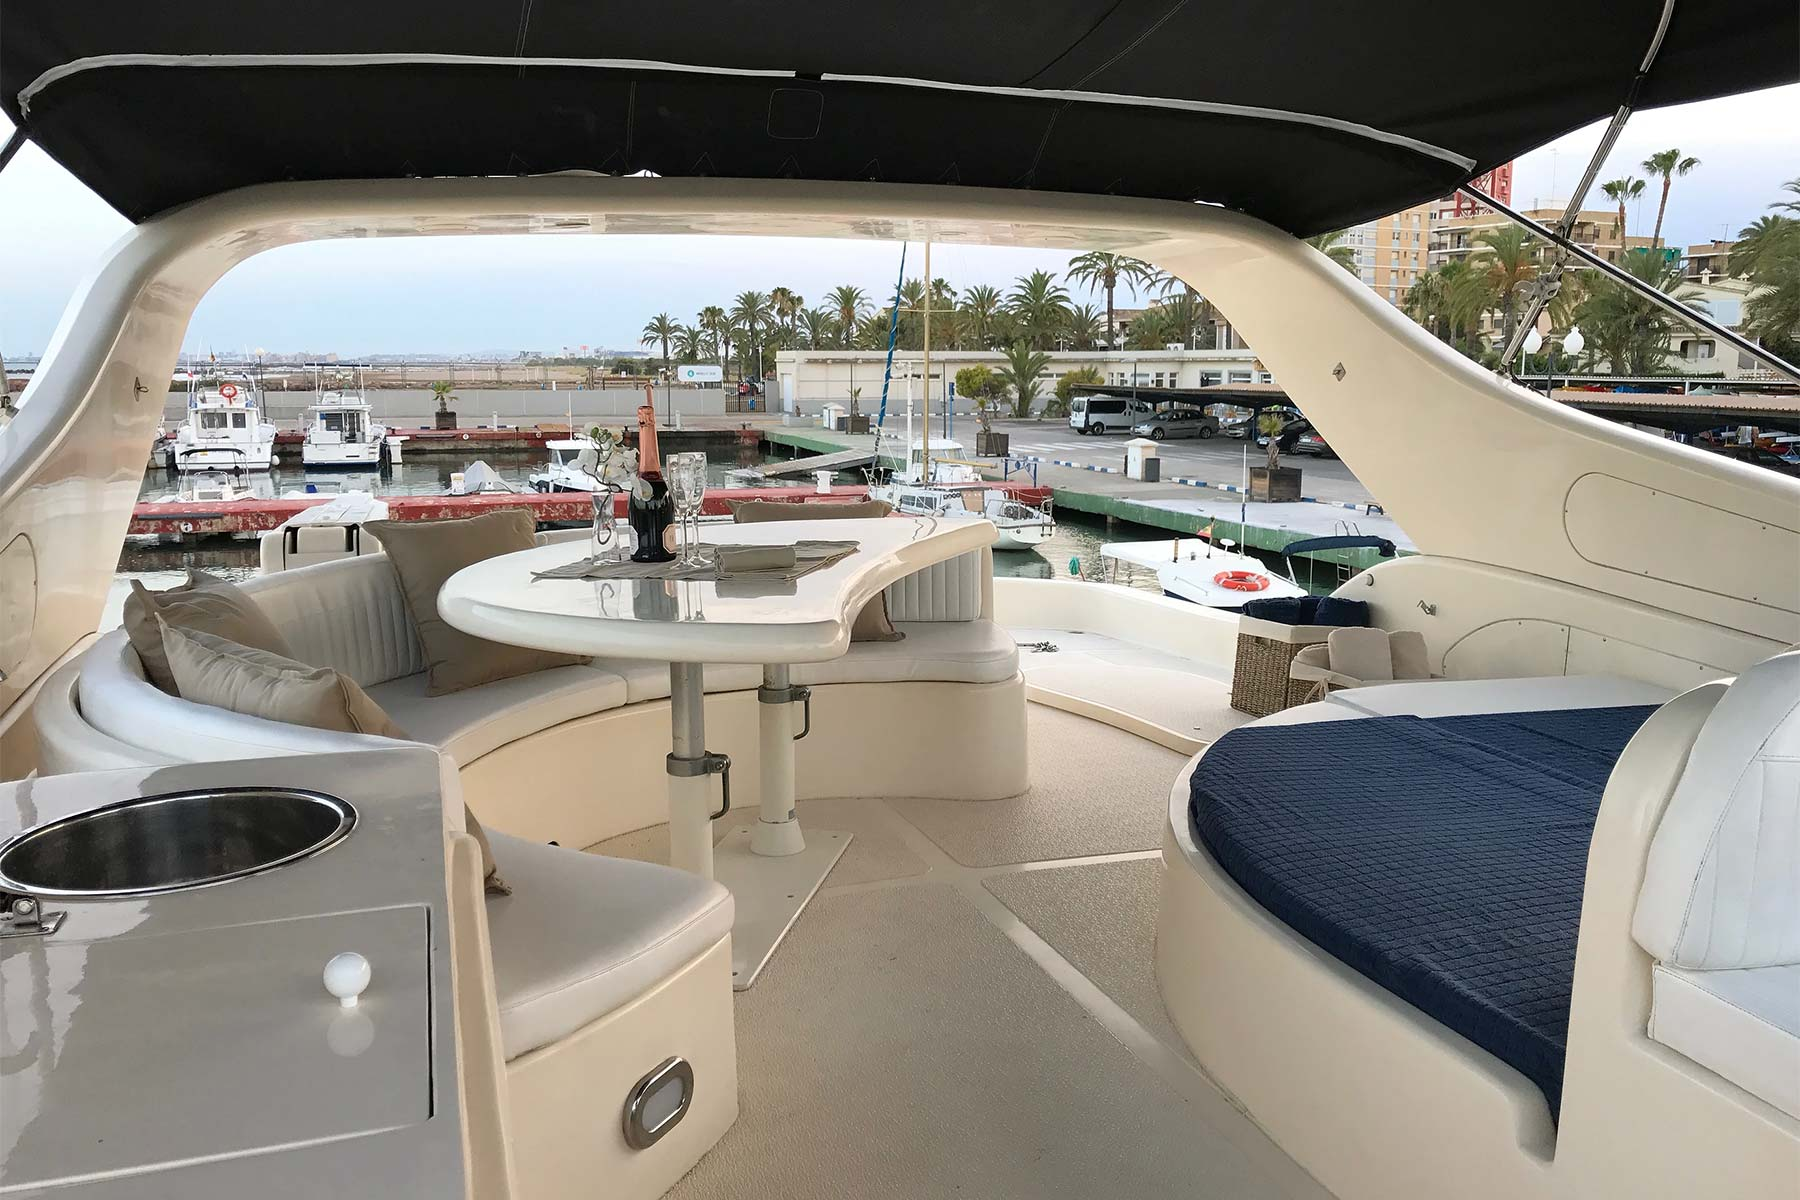 Tips for renting a boat